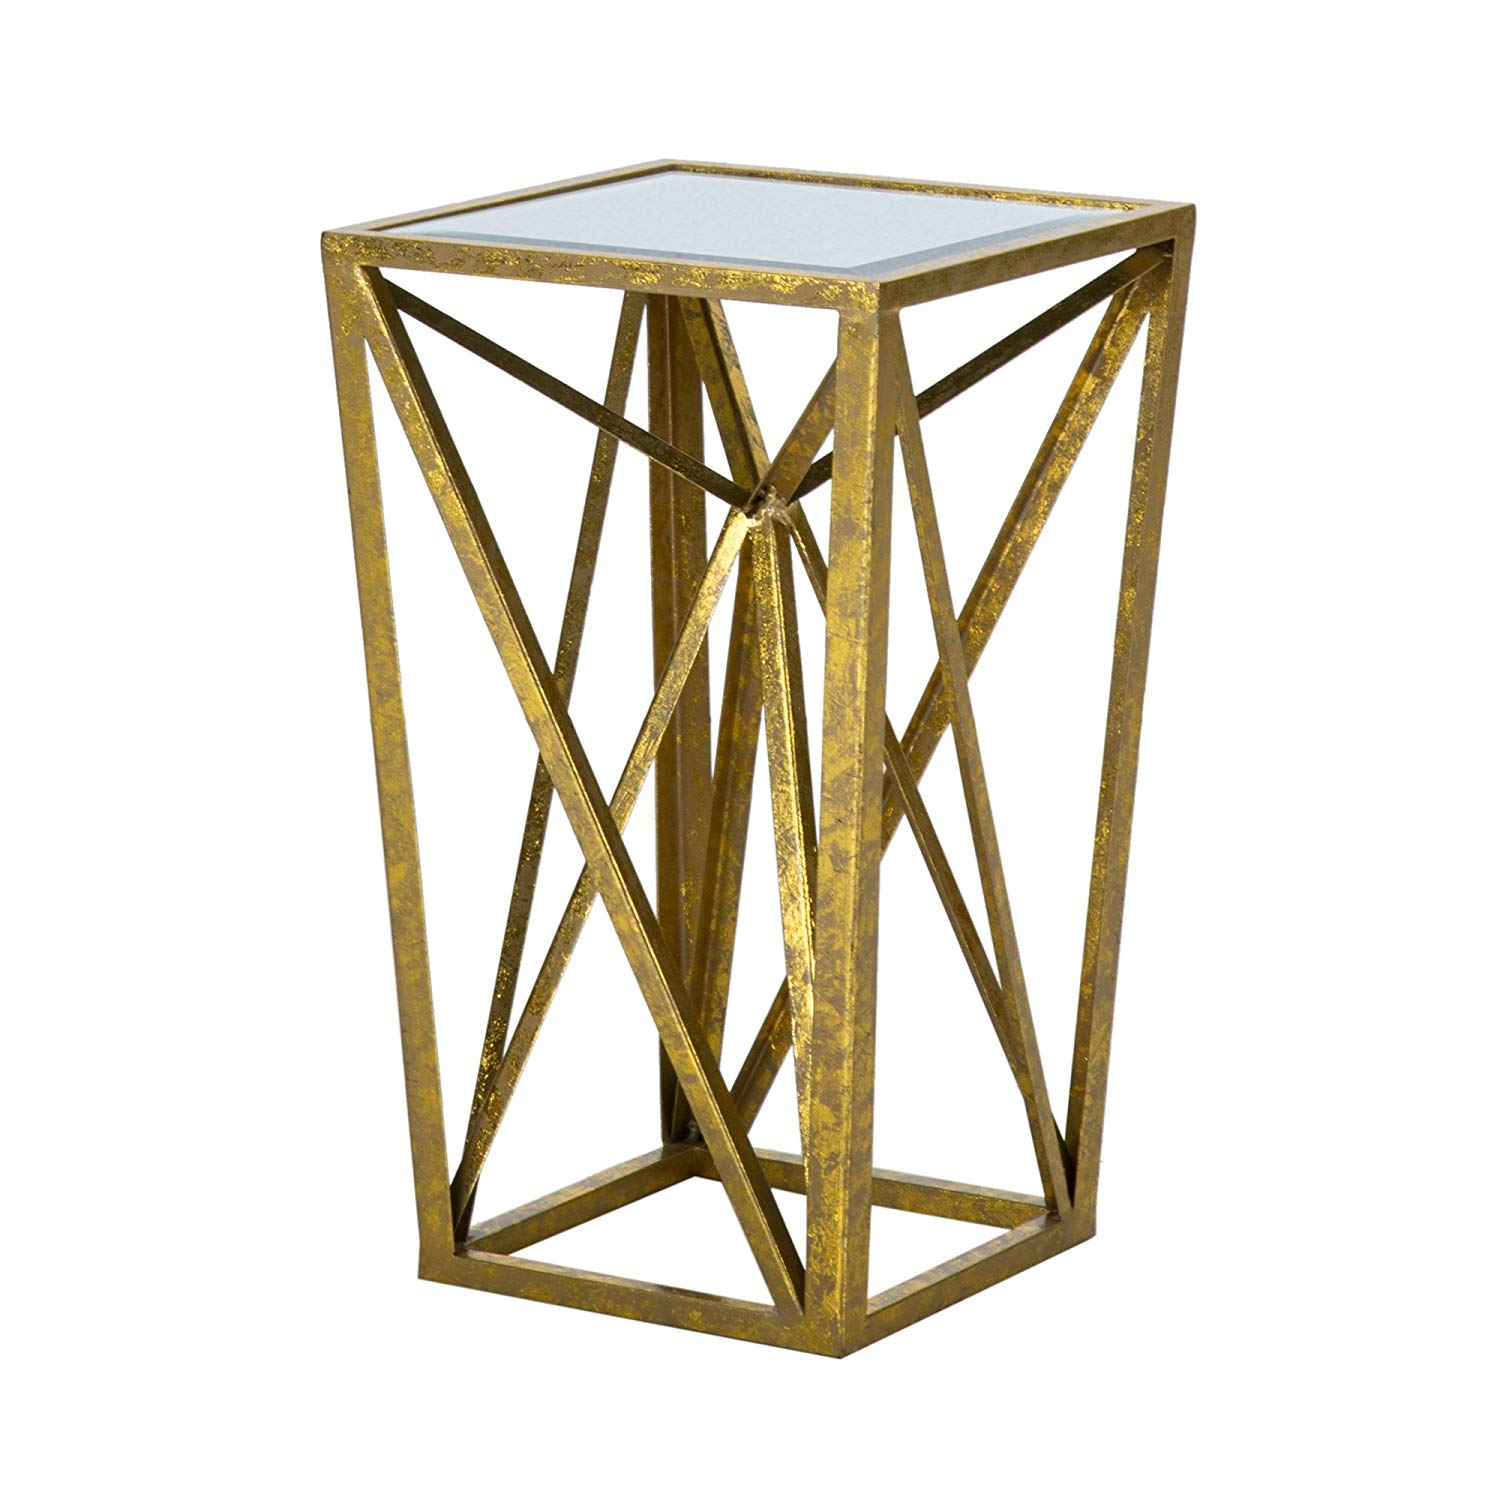 madison park zee accent tables mirror glass metal gold table with marble top side angular design modern style end piece hollow round ikea coffee and dale tiffany hummingbird lamp